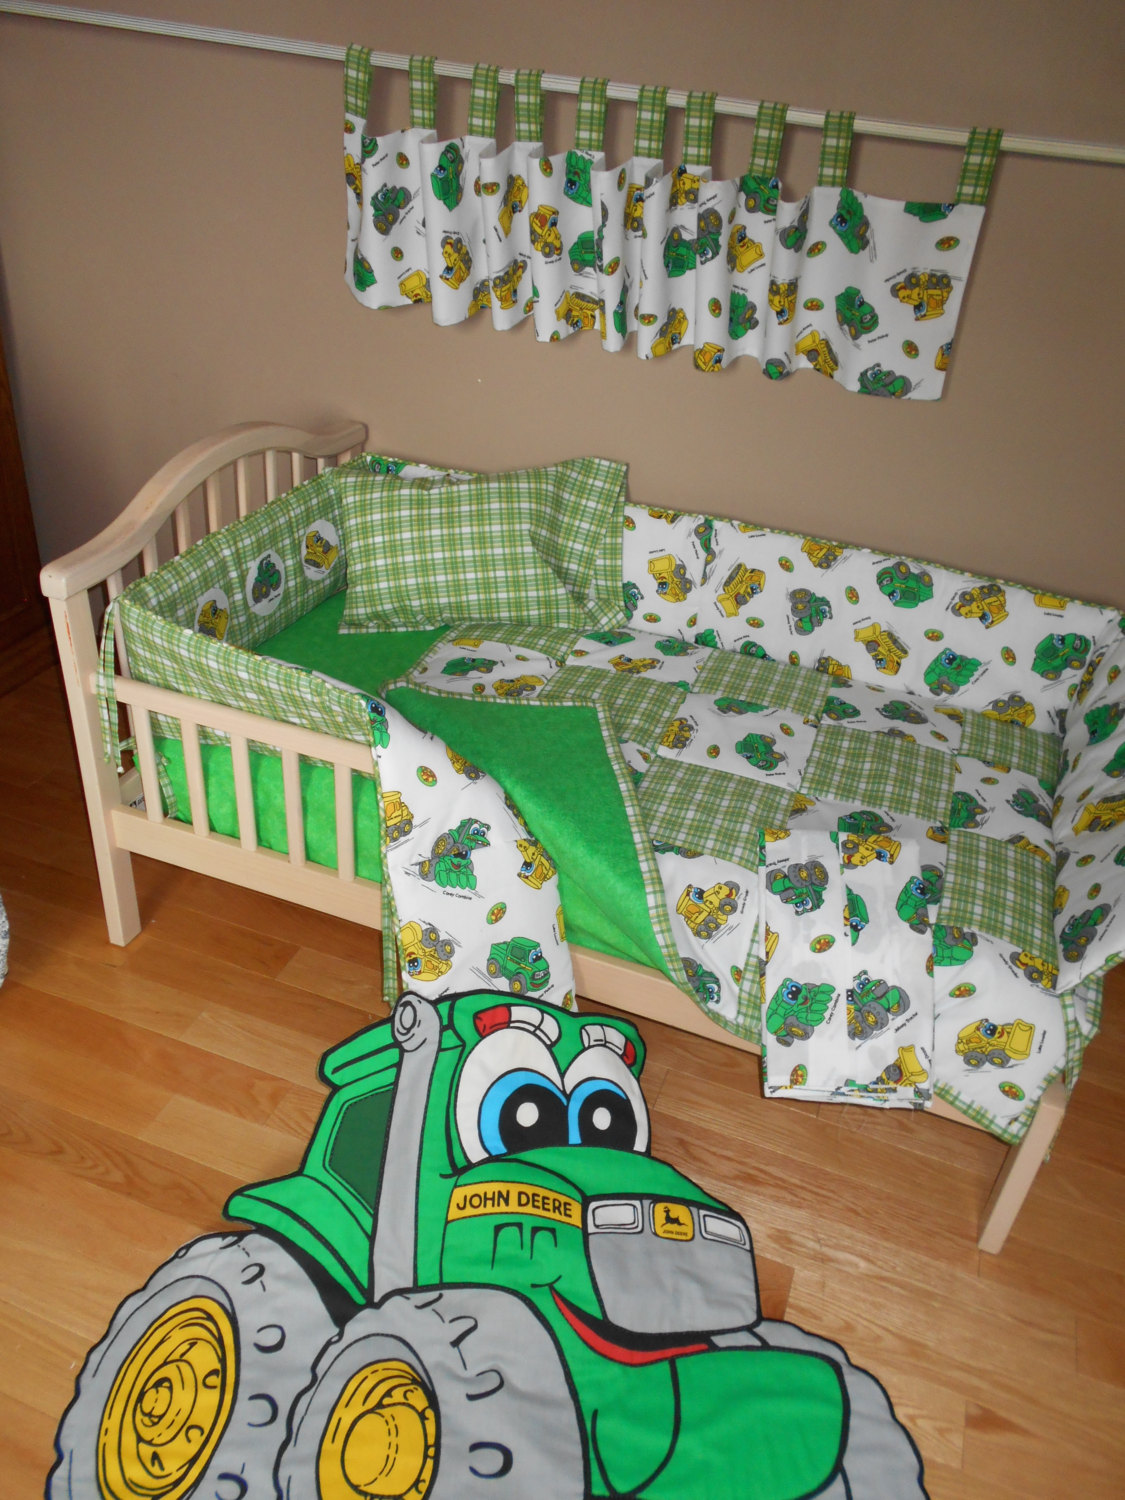 John Deere Bed for Kids | Pink John Deere Baby Bedding | John Deere Bedding